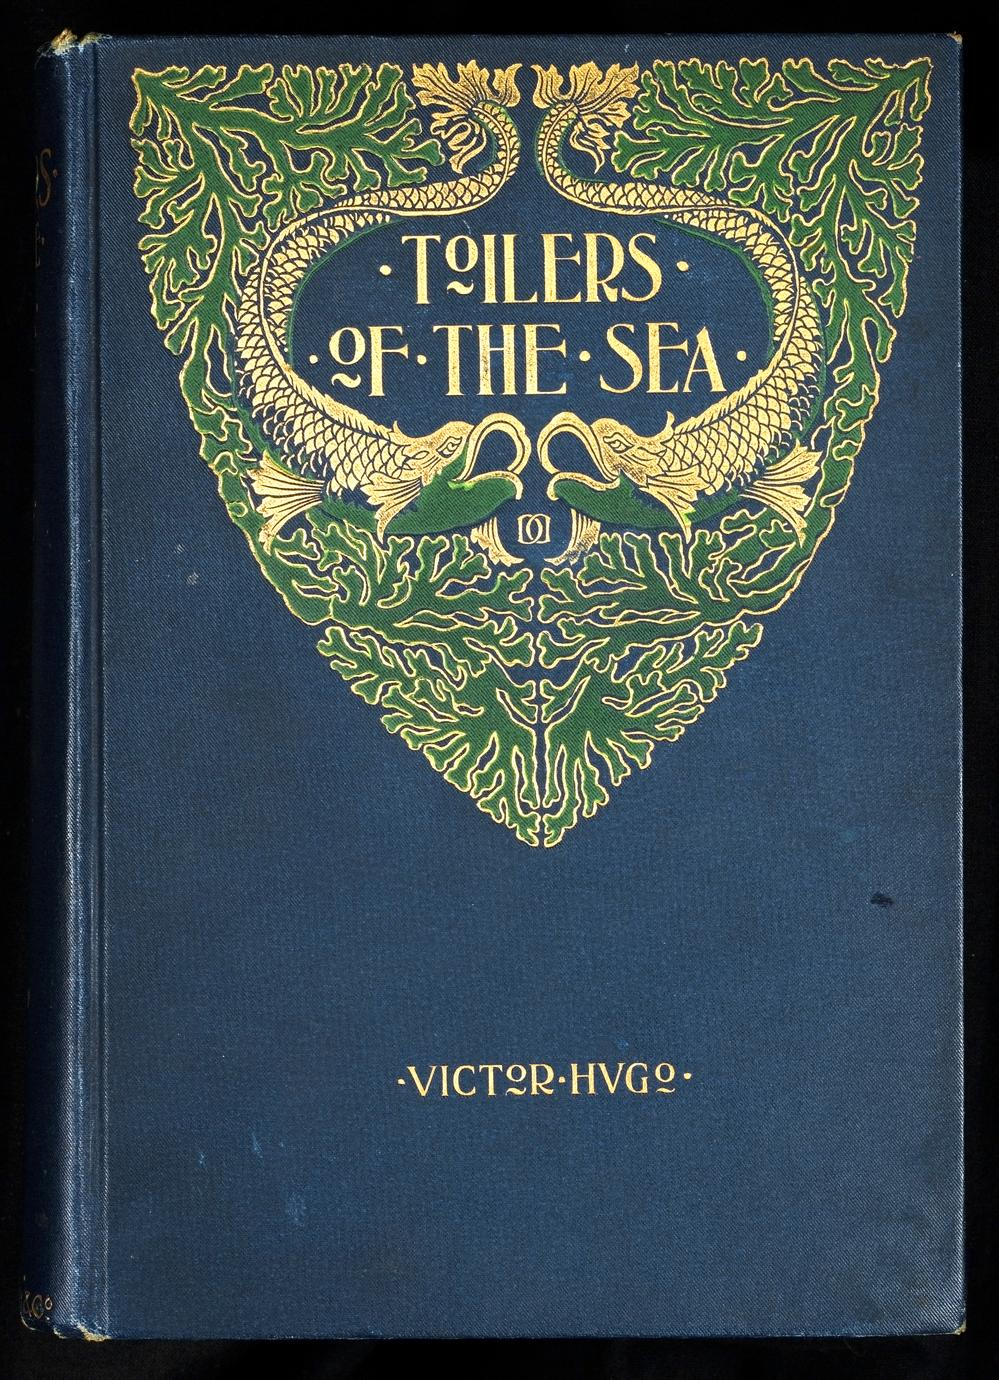 The toilers of the sea (1 of 3)